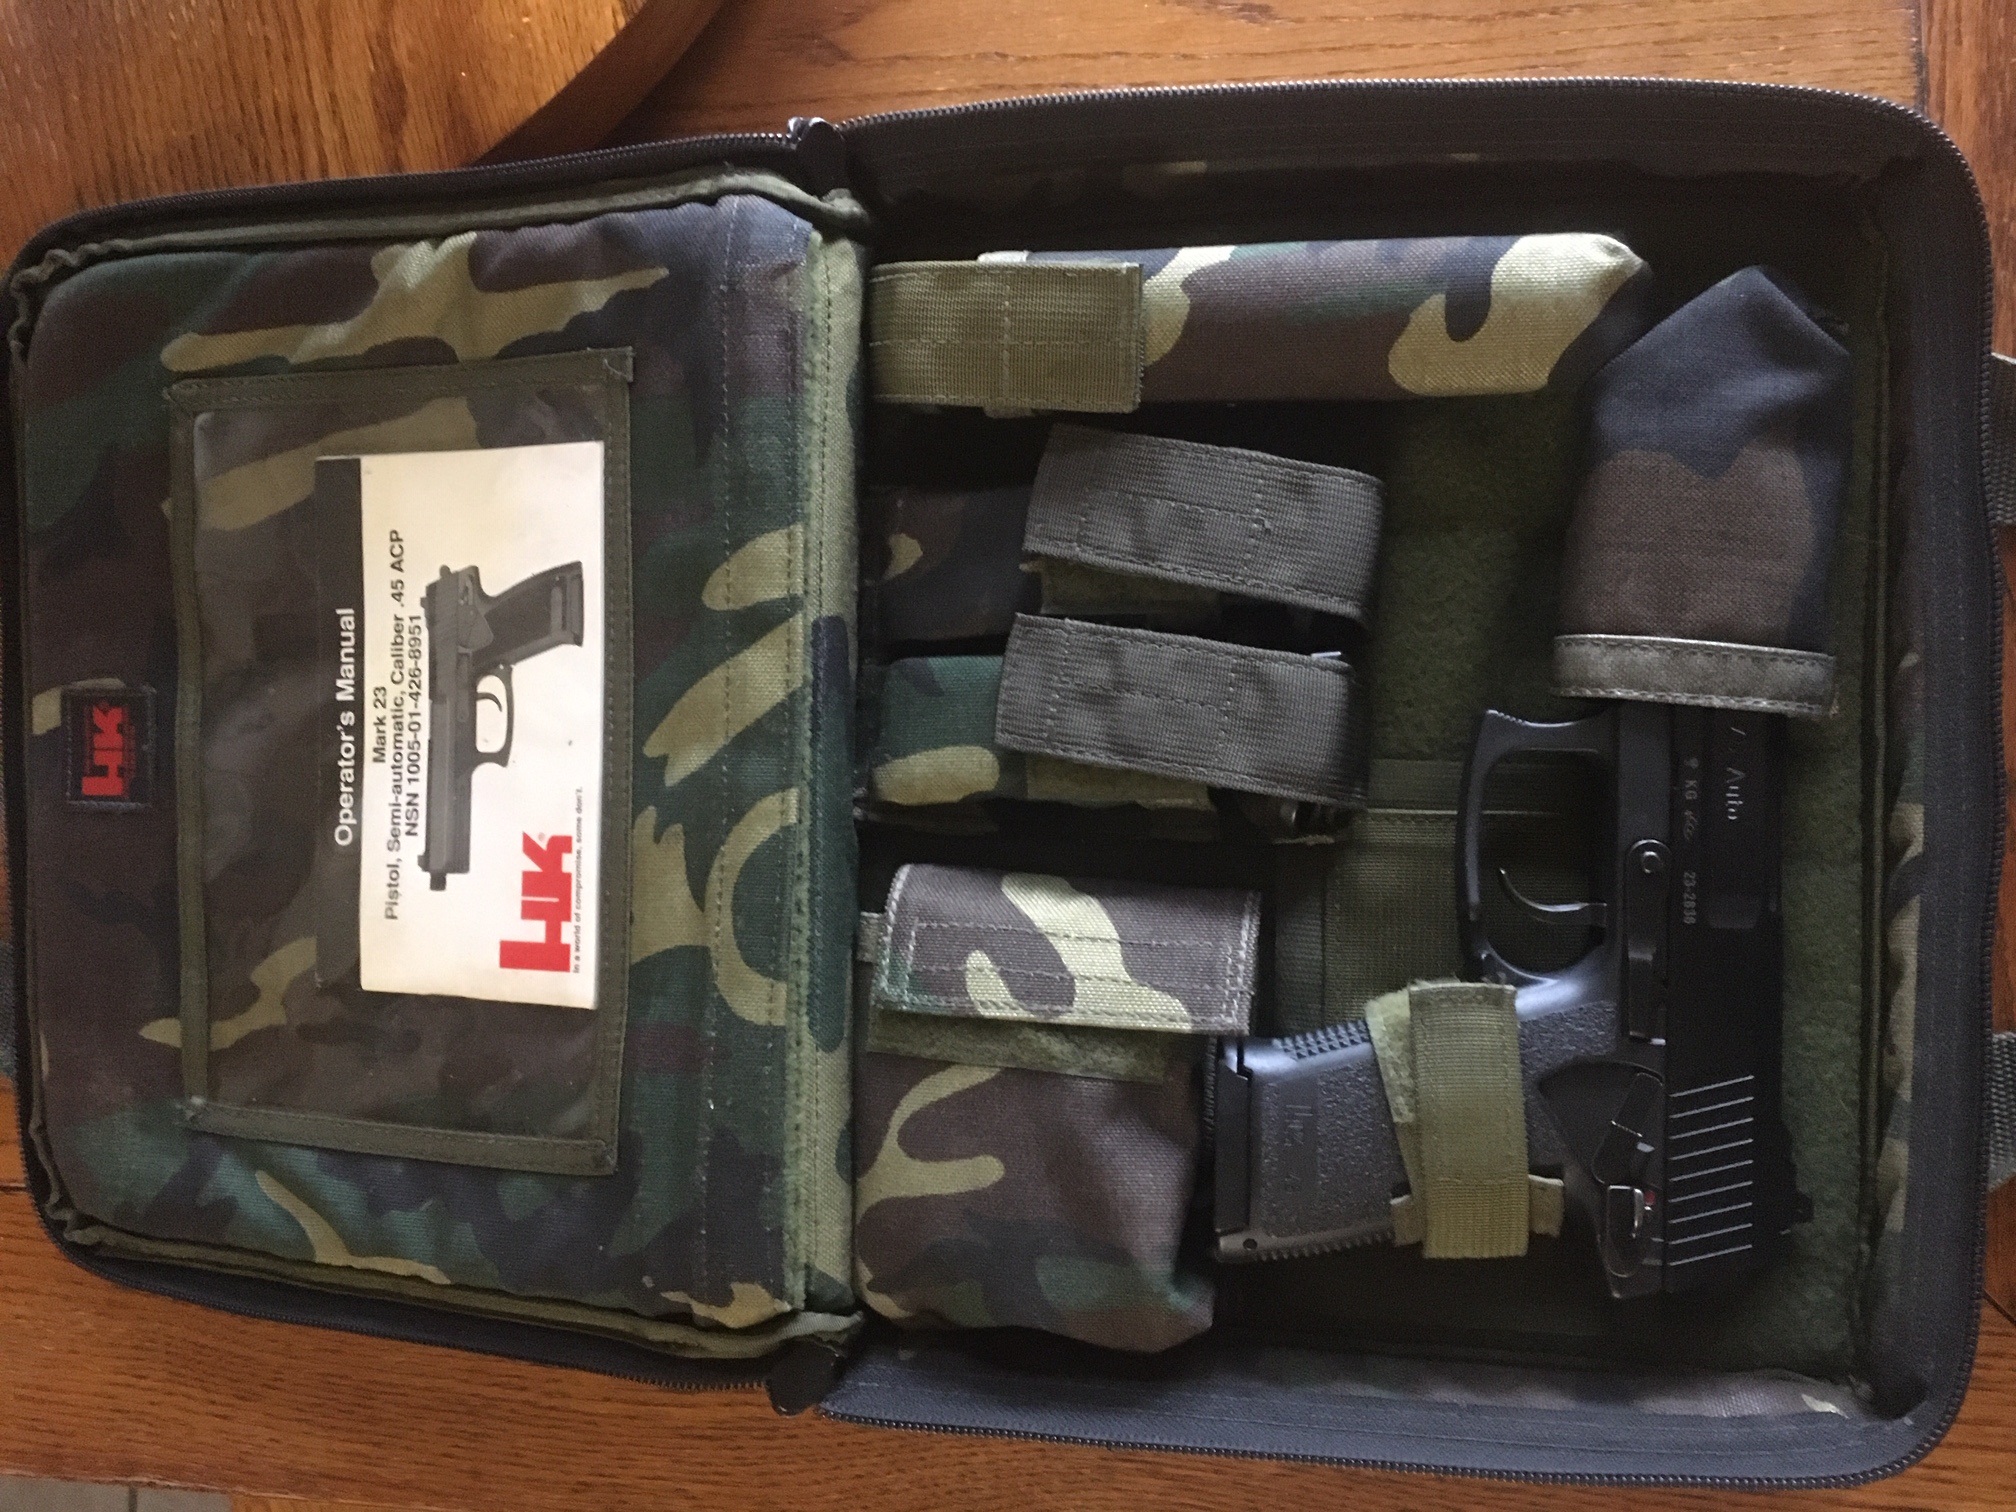 WTS: 1996 KG MARK 23 pistol, camo case, KAC suppressor and LAM package-img_4522.jpg